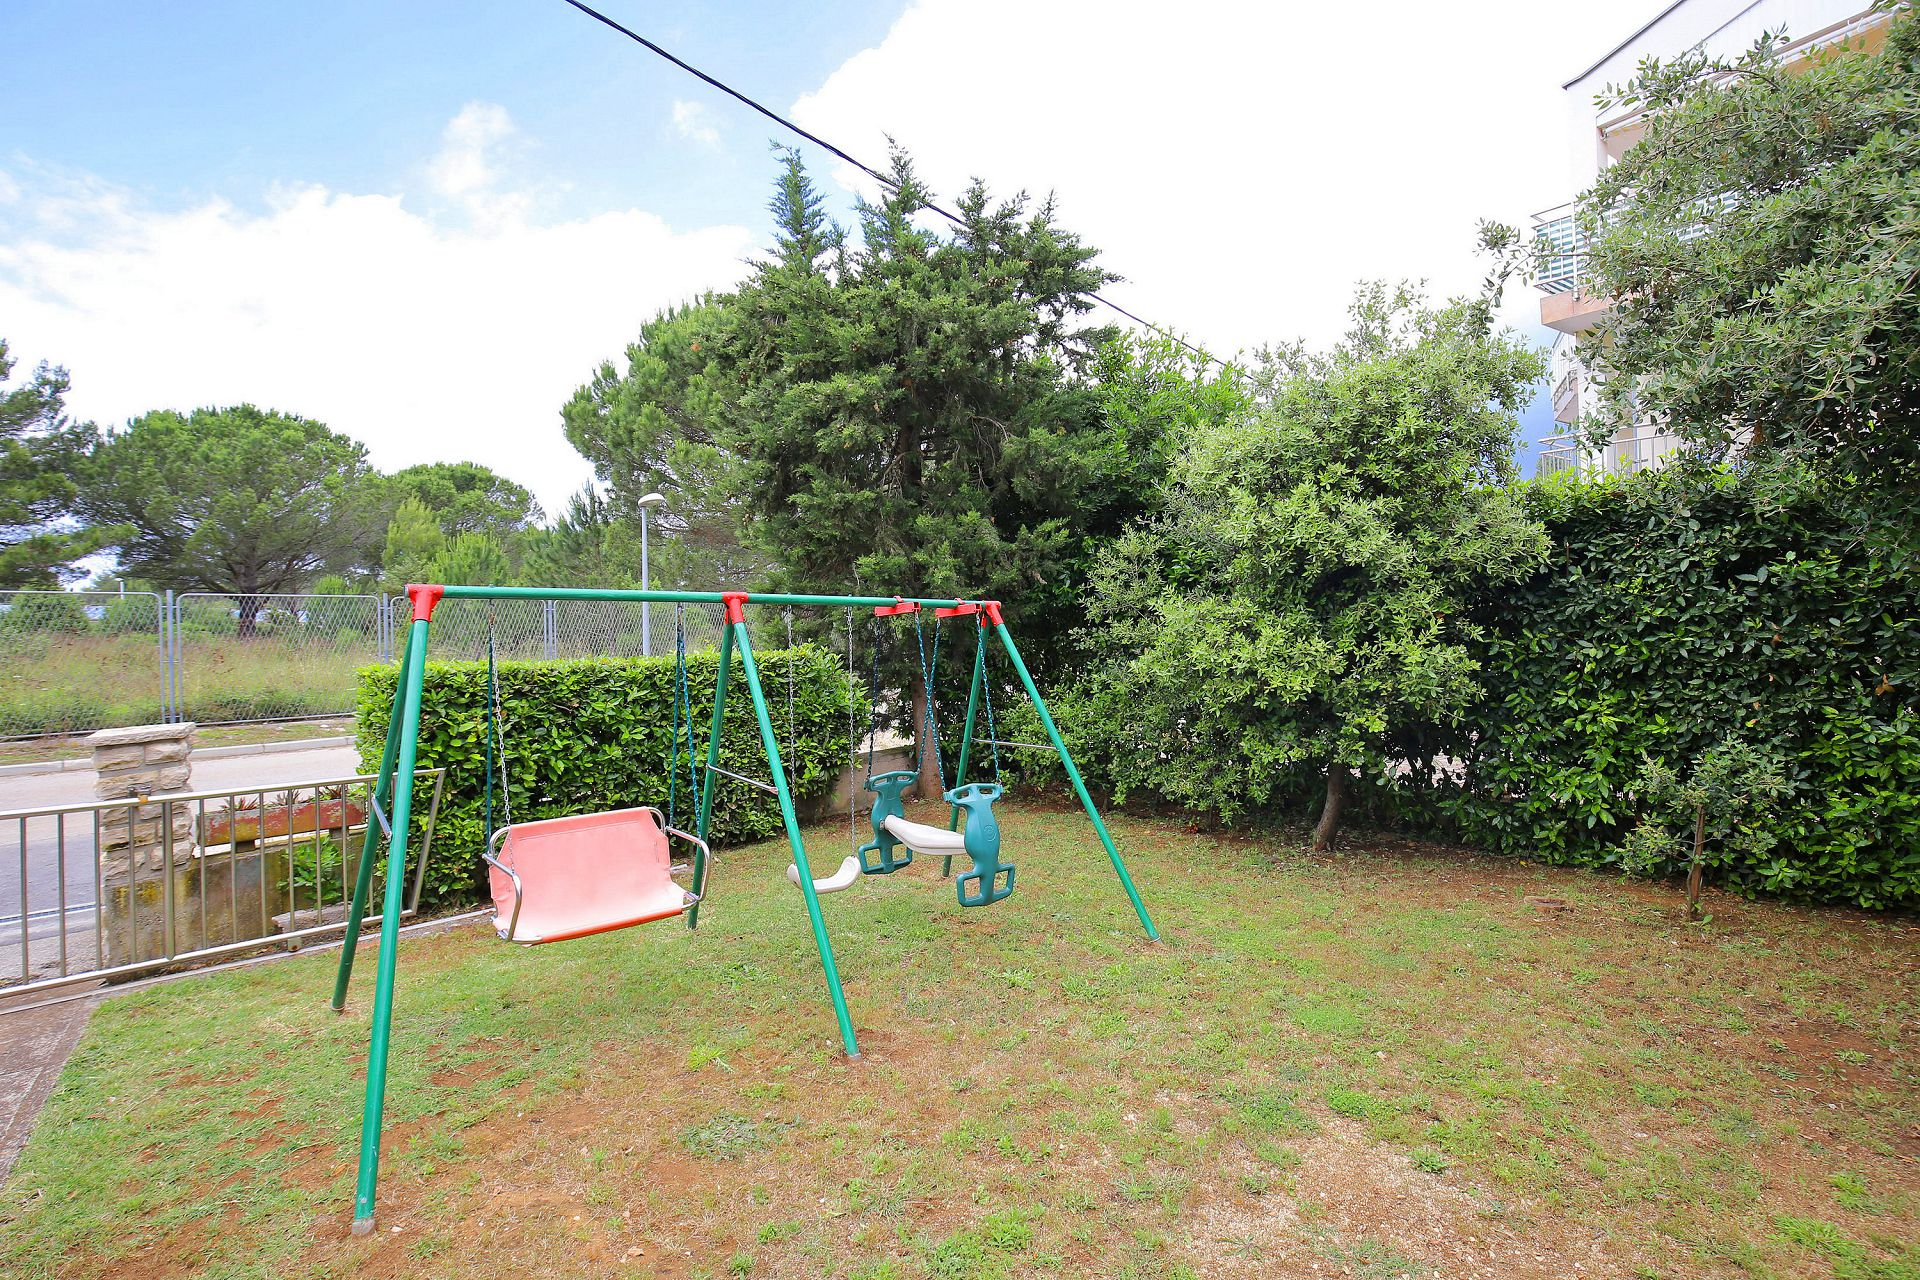 00418ZATZ - Zaton (Zadar) - Apartments Croatia - children playground